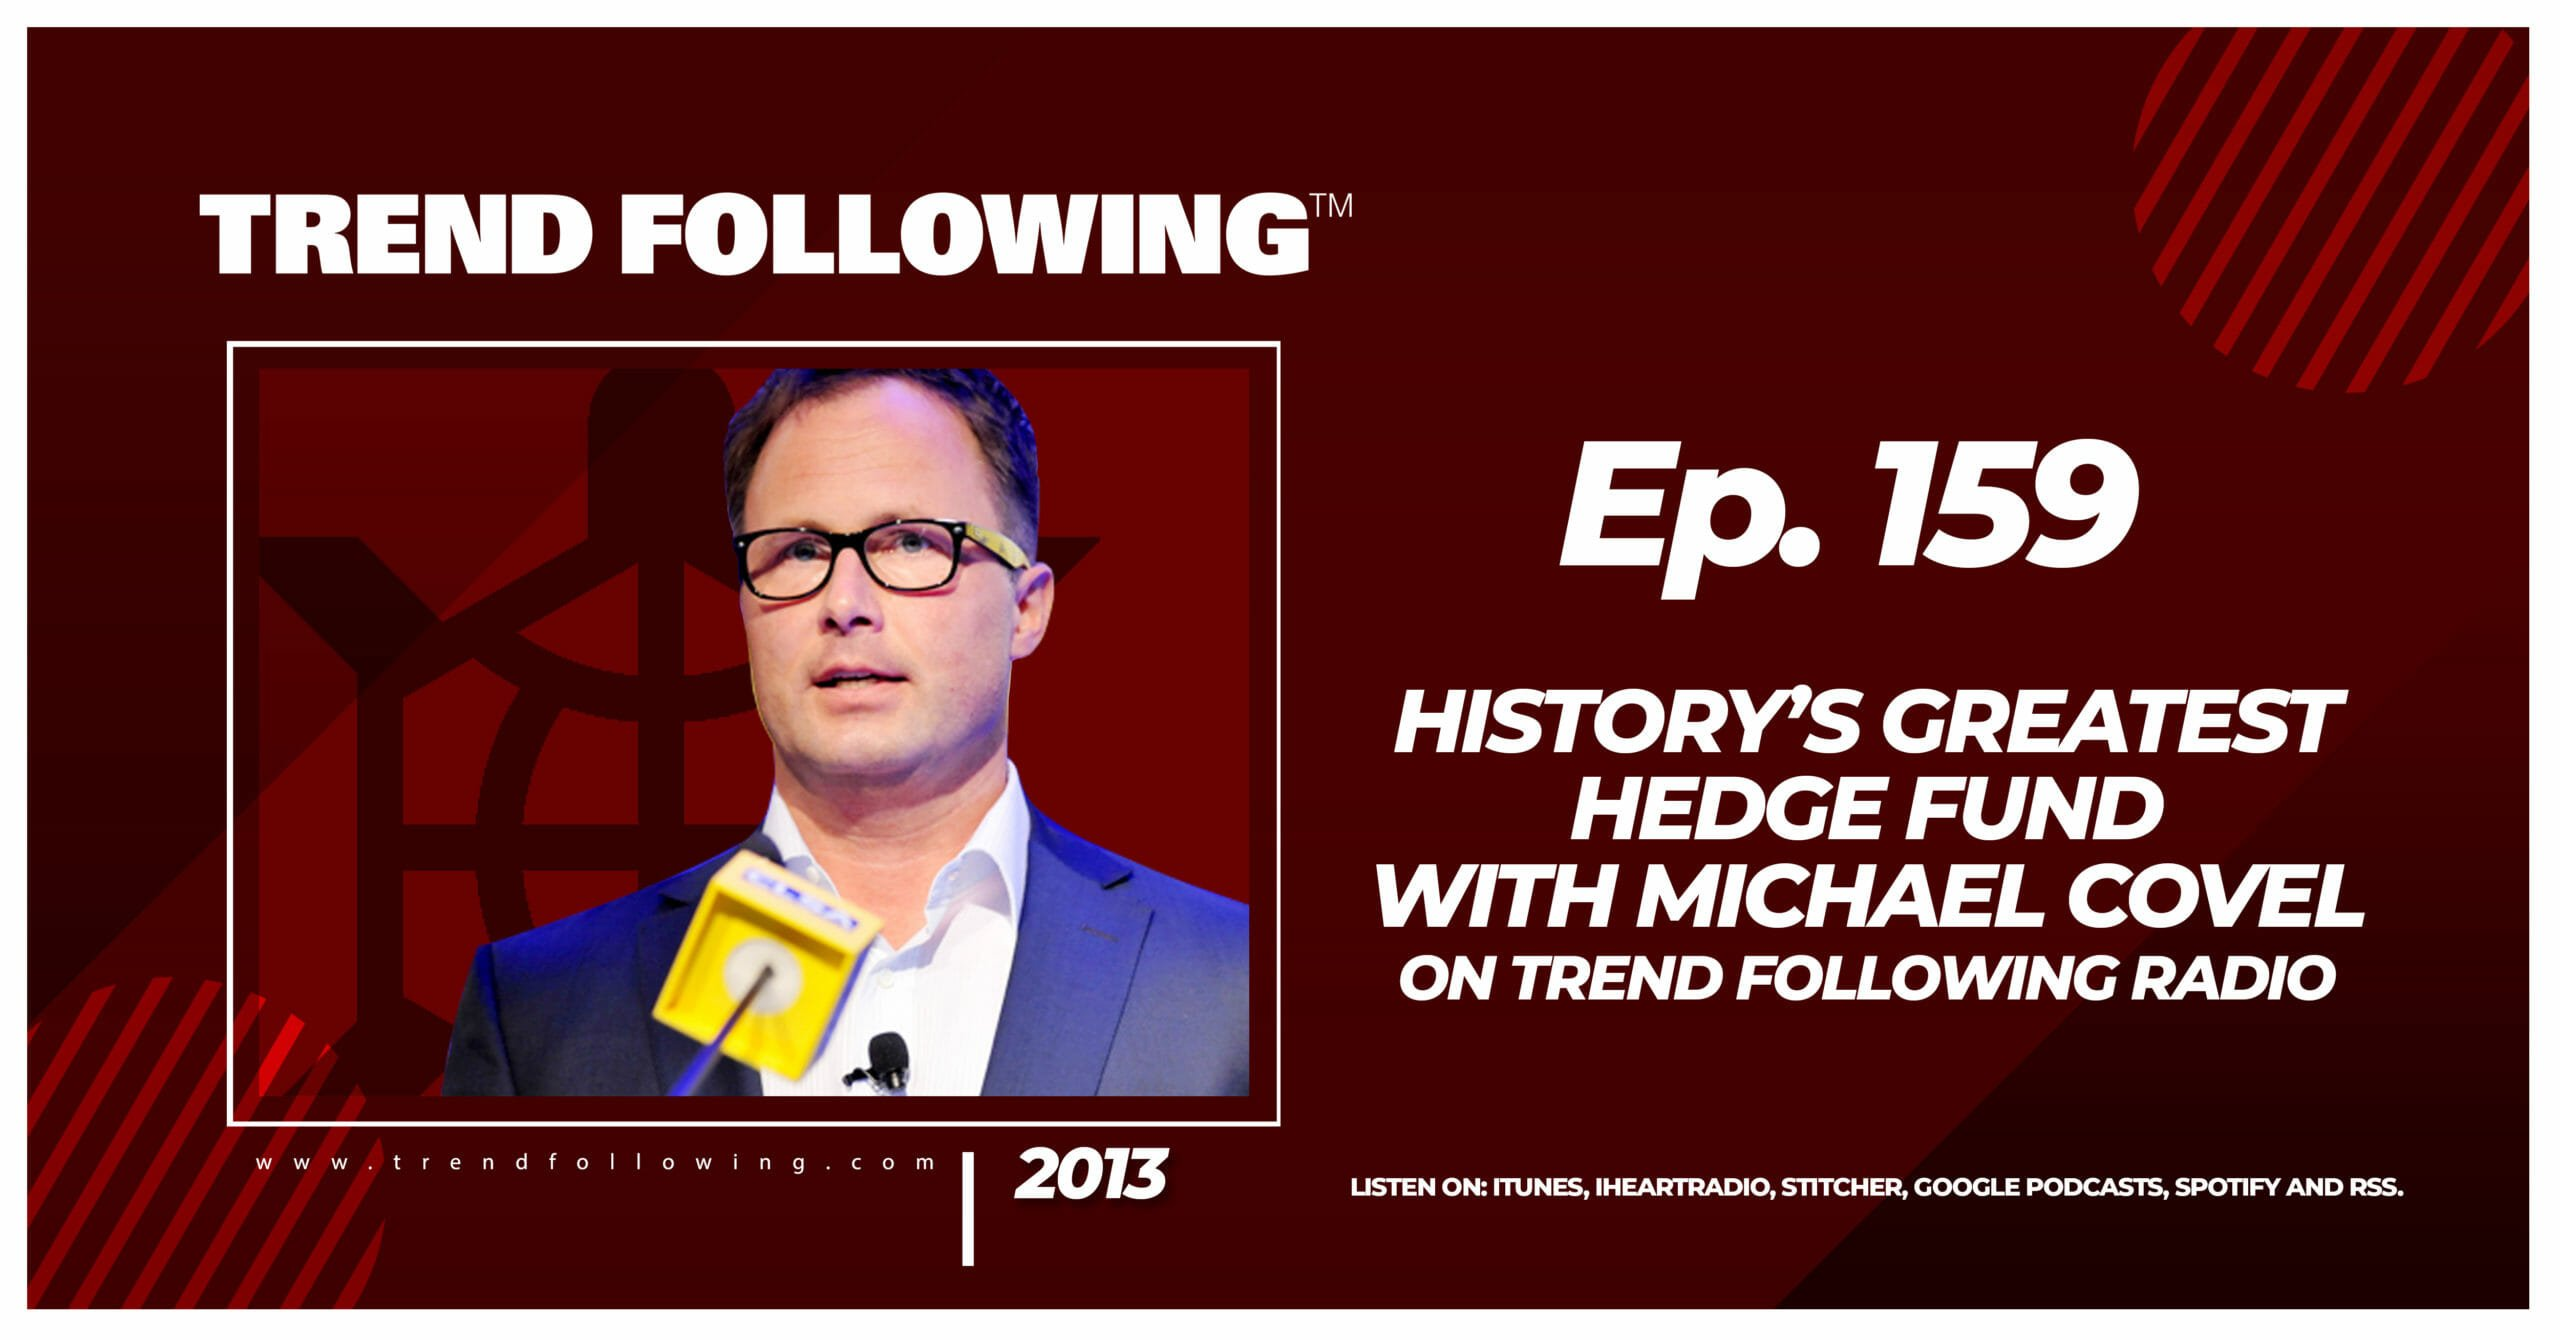 History's Greatest Hedge Fund with Michael Covel on Trend Following Radio